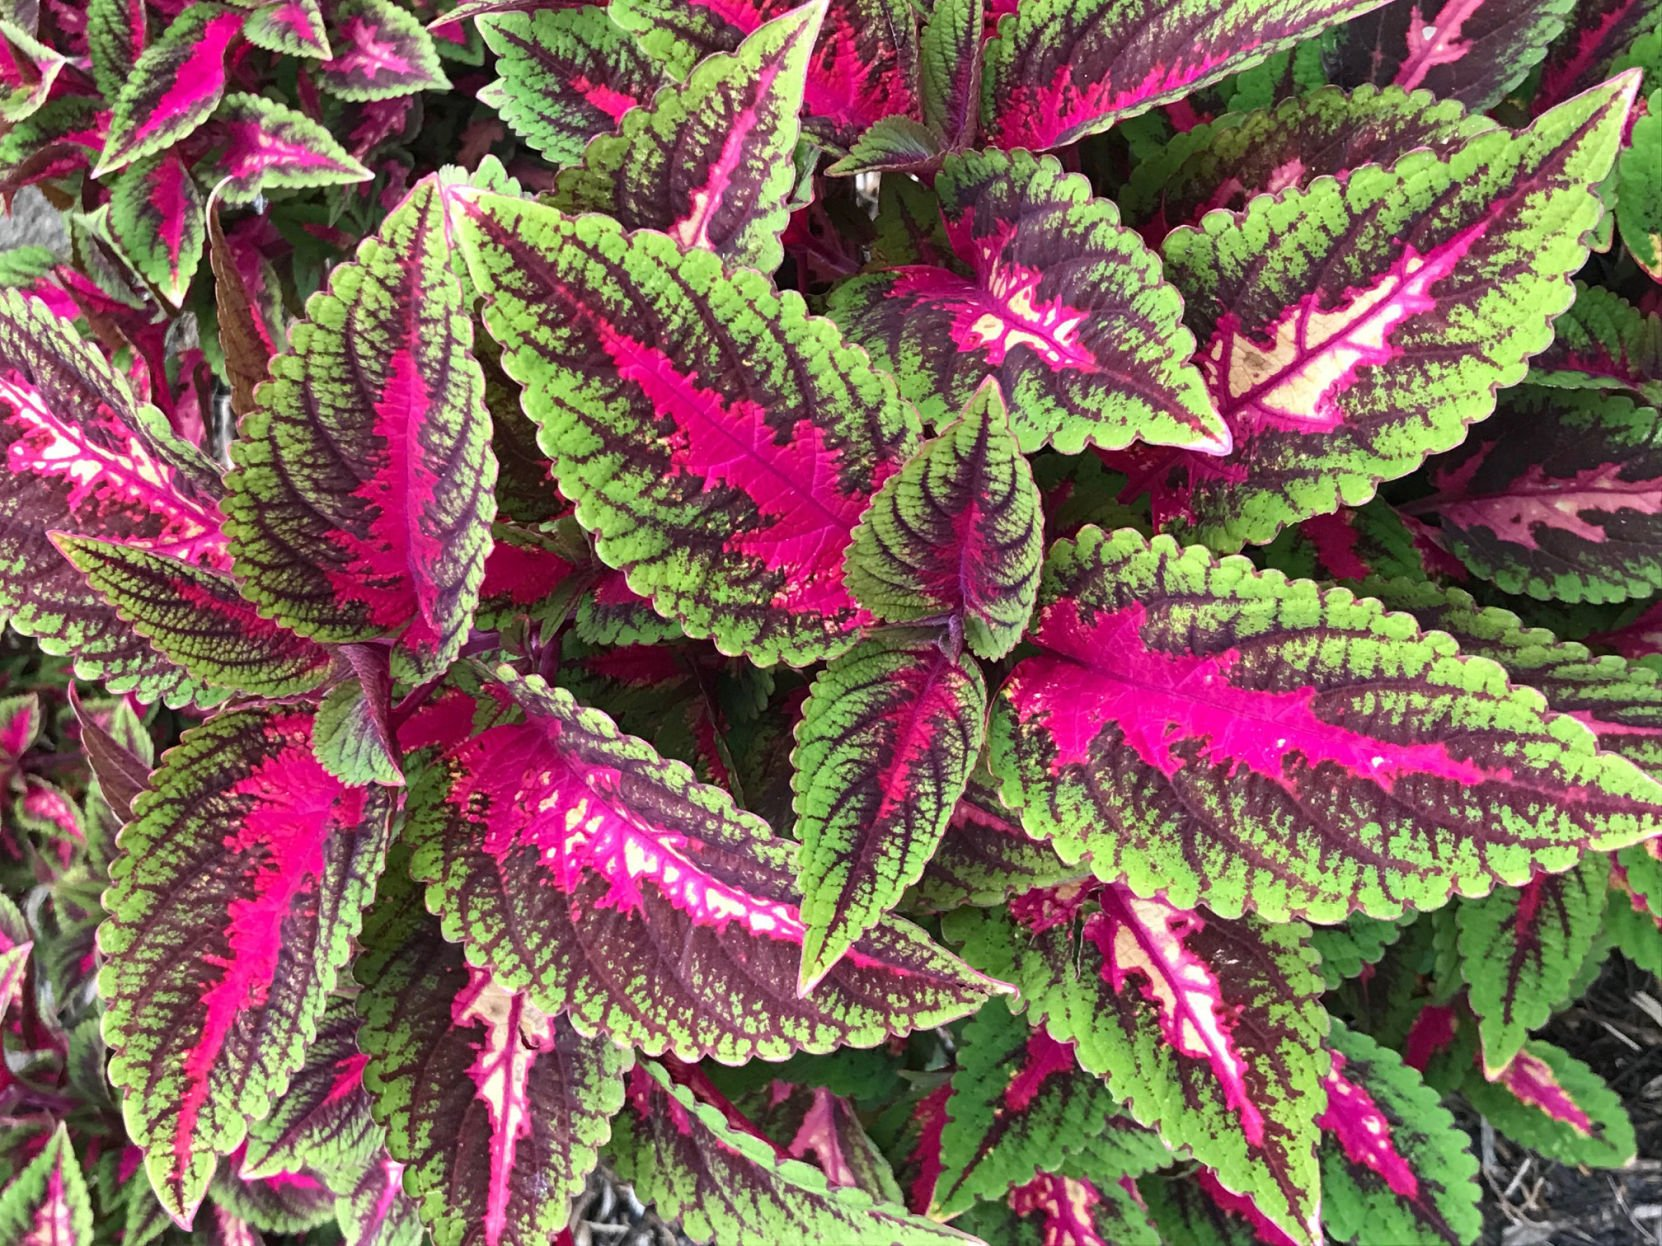 Barry Fugatt: New Coleus Plants Bred For Bright Summer Sunshine